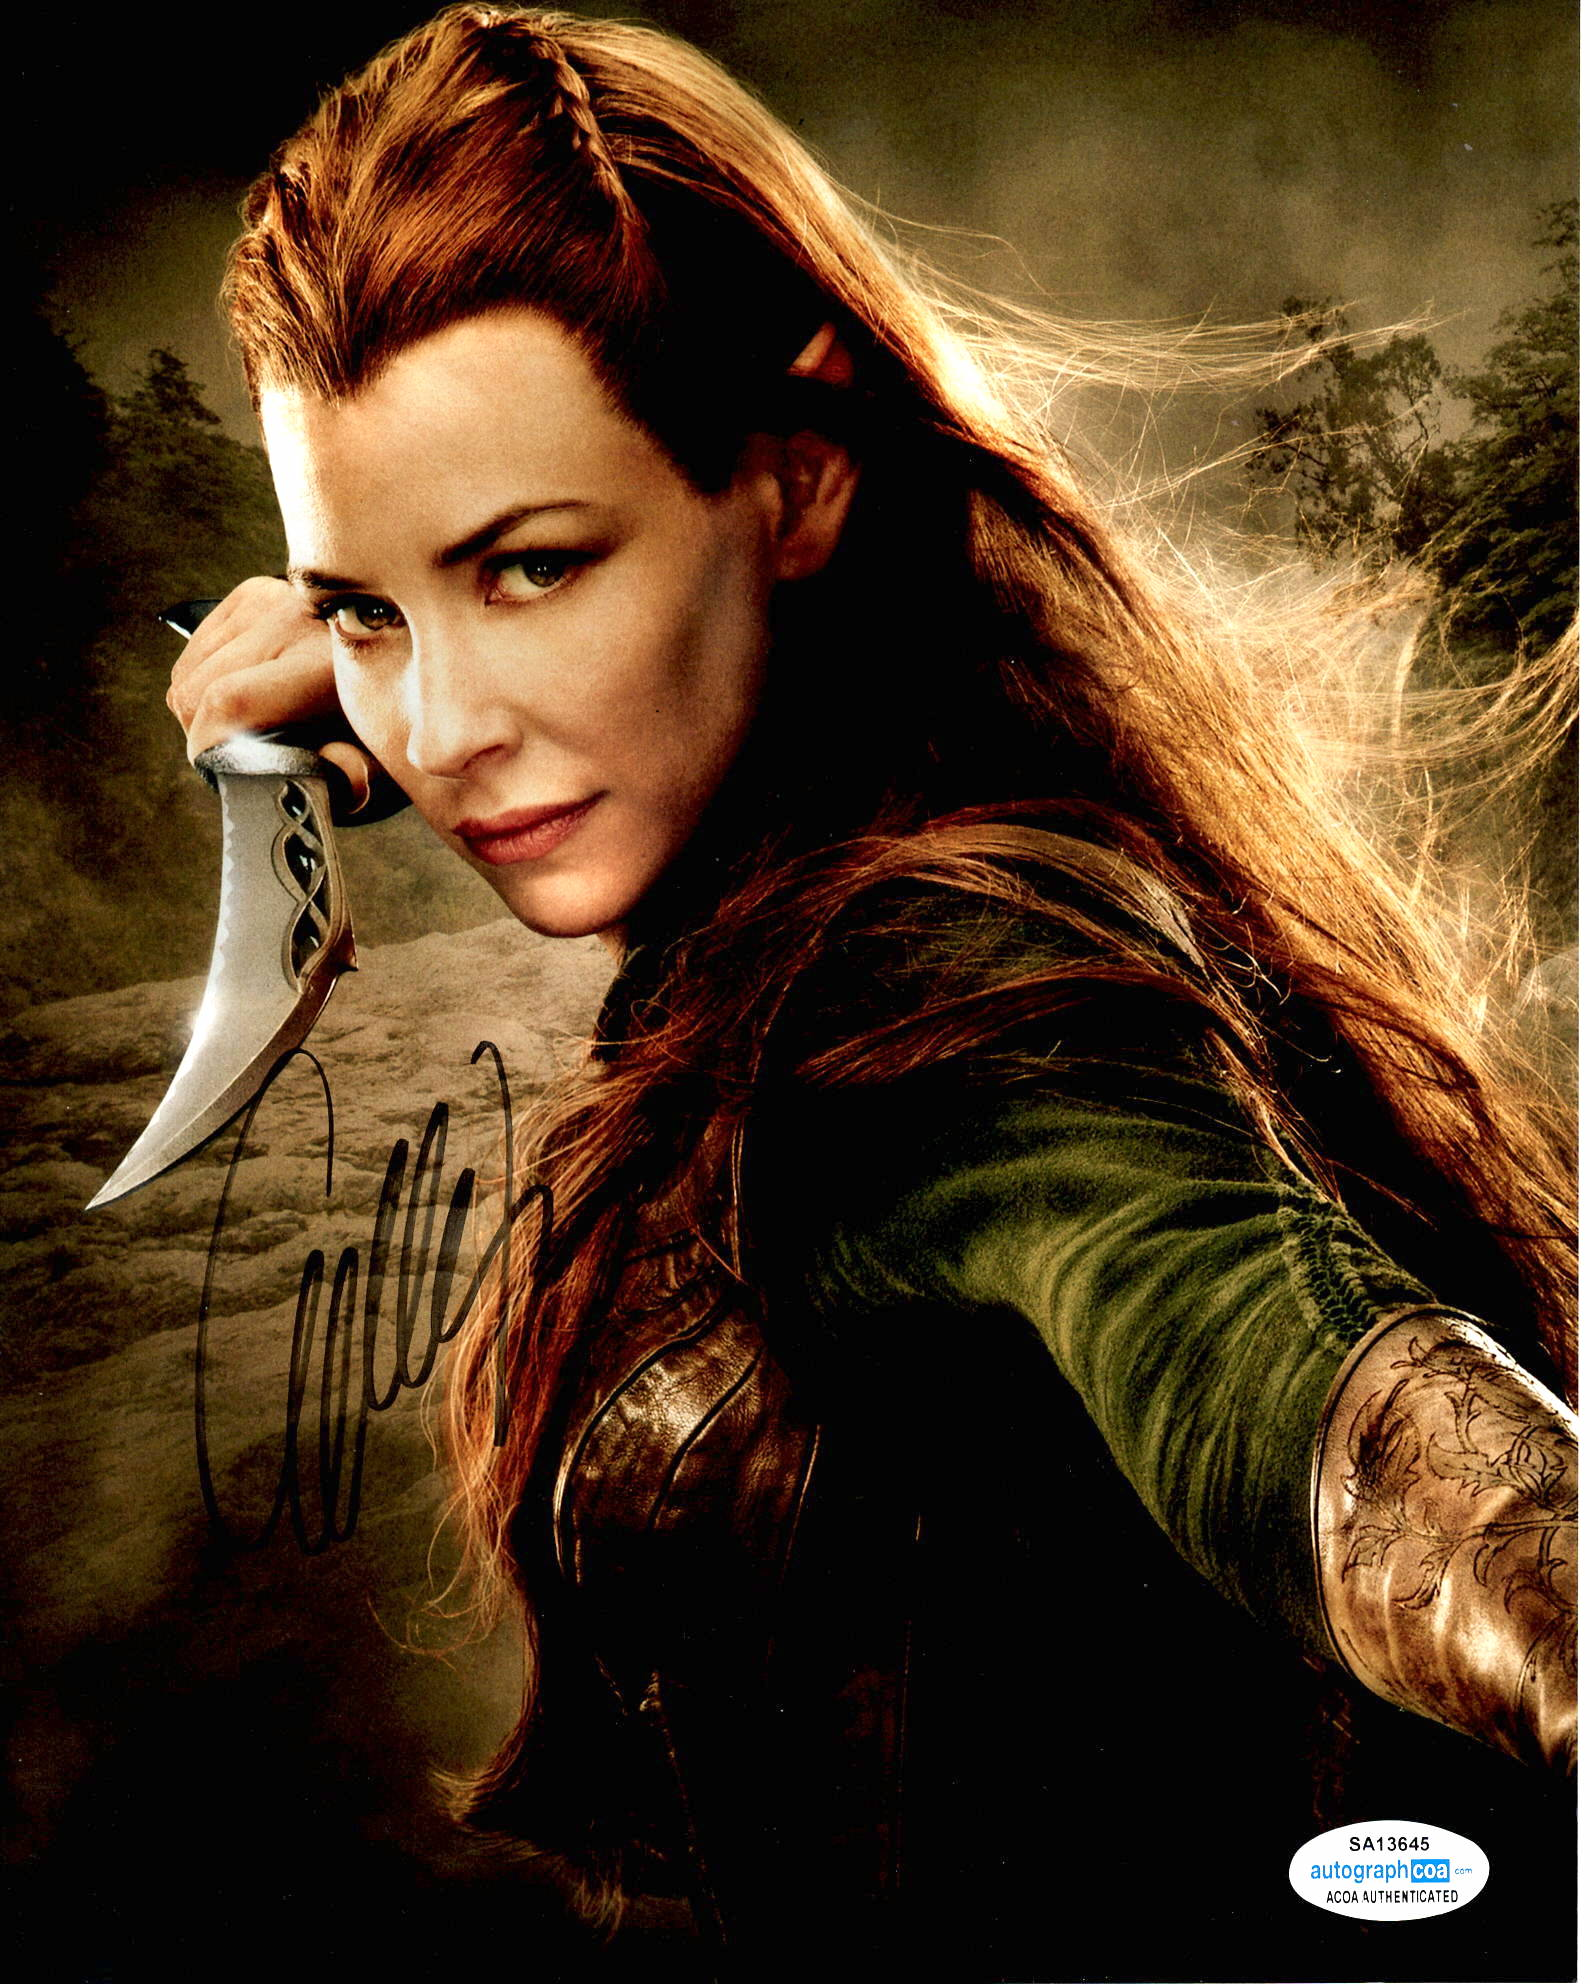 Evangeline Lilly The Hobbit Signed Autograph 8x10 Photo #3 - Outlaw Hobbies Authentic Autographs